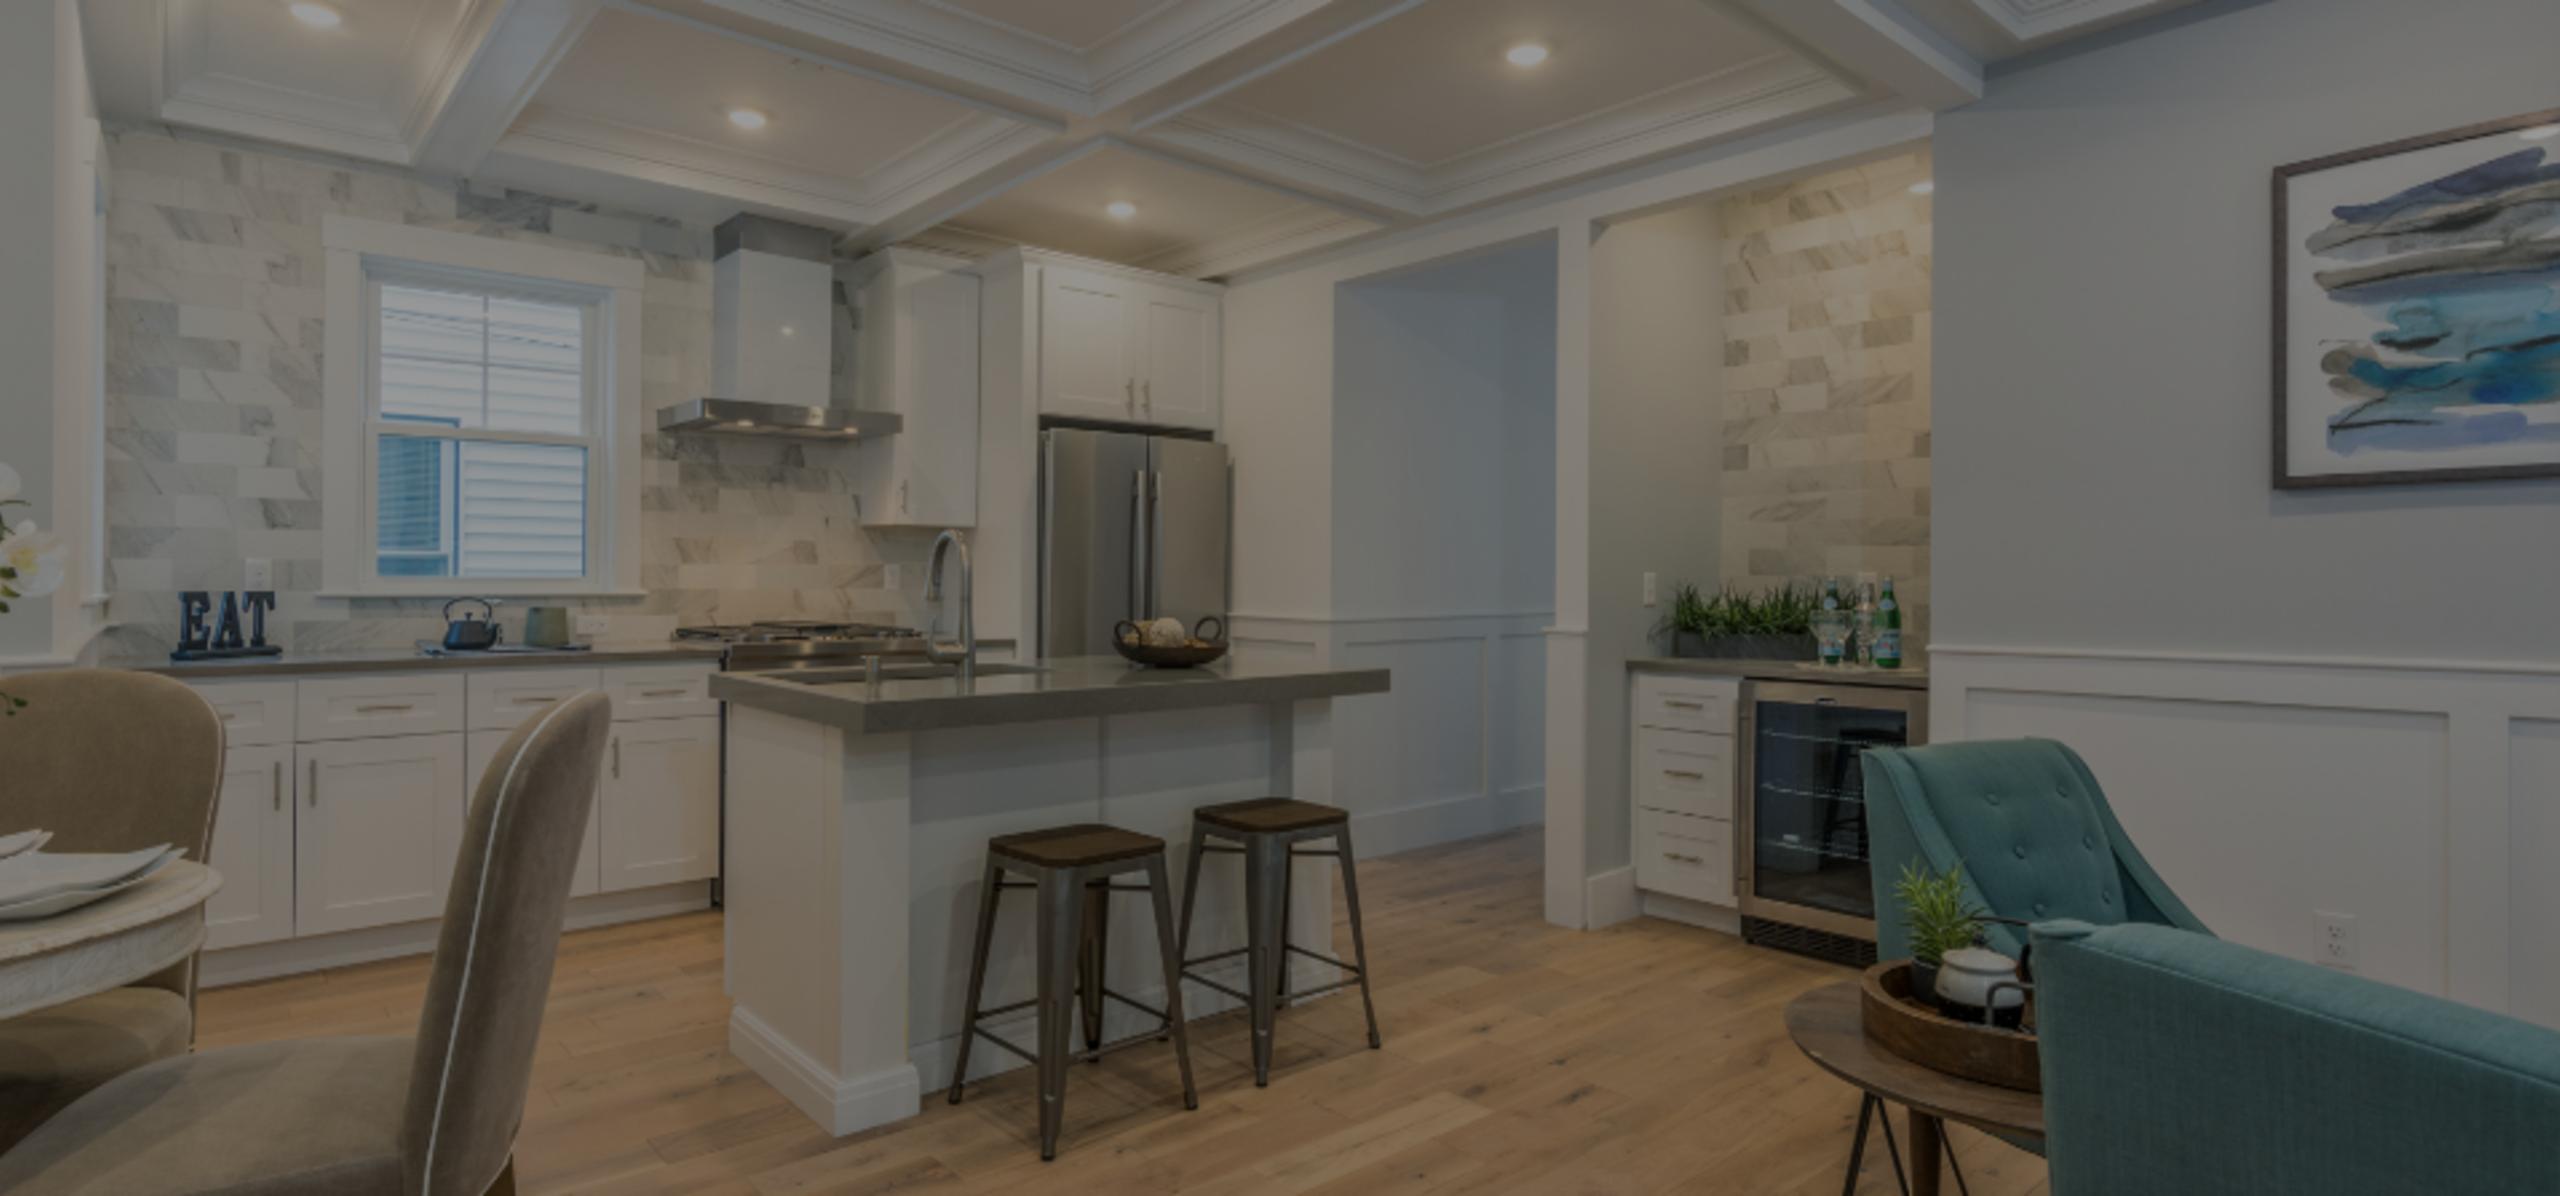 Two Stunning Open House Events in Greater Boston This Weekend